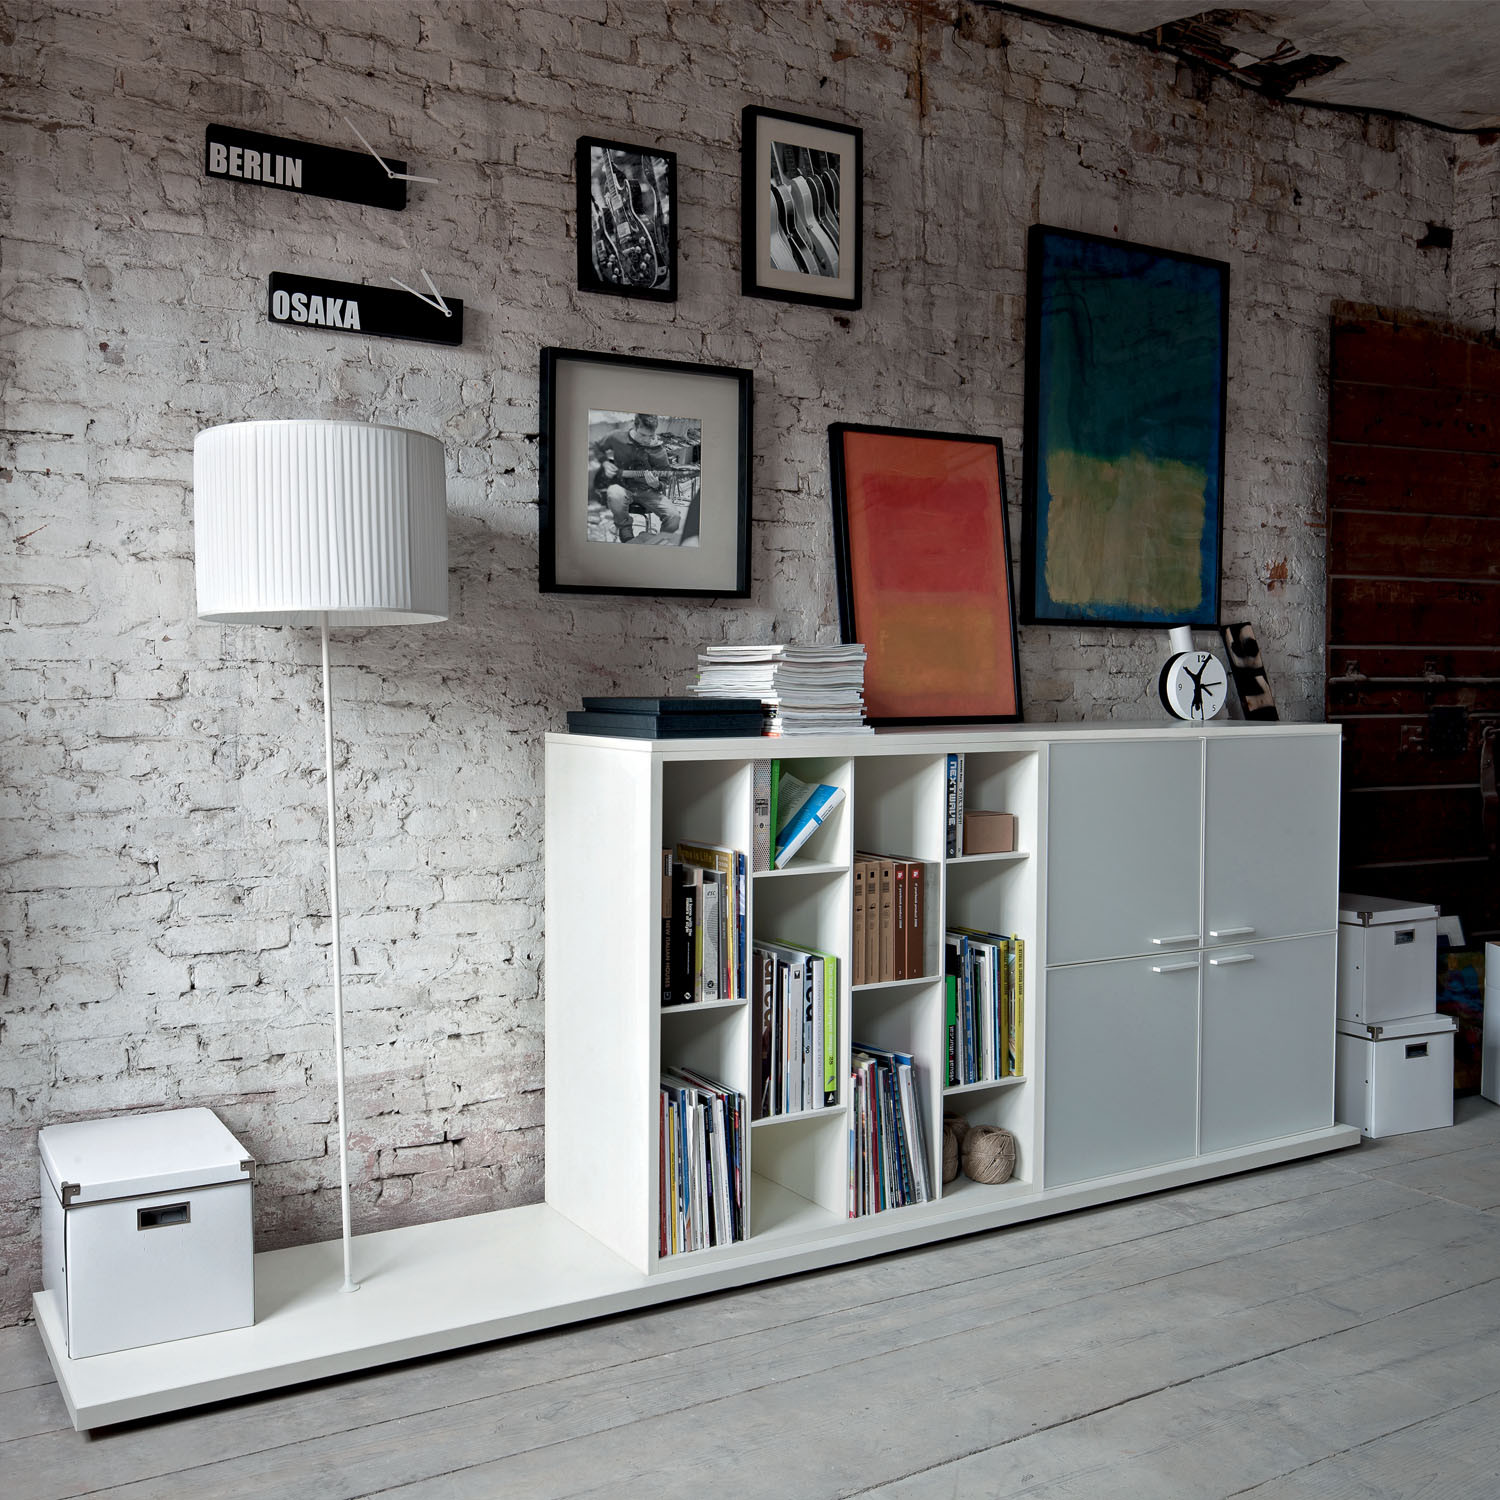 Dado Open Display Storage by Sinetica